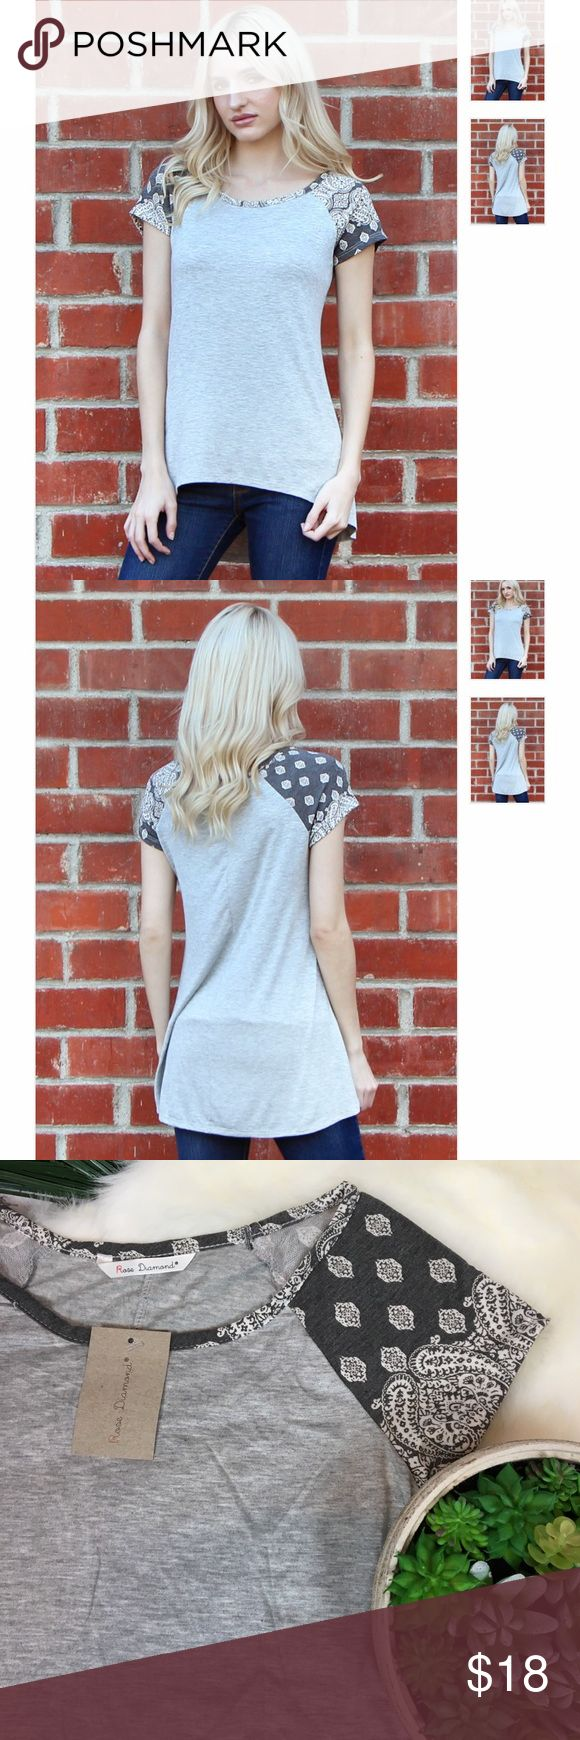 ✨NEW✨ Paisley Gray Printed Hi-Low Raglan Tee S-XL Gorgeous. BOHO Chic Paisley Sleeve Raglan Hi-Low Tee by Rose Diamond. Gray with Paisley print sleeves overlay ... absolutely BEAUTIFUL!!! This top is one of my favorites. Unlike other boutique items ... this gem is MADE IN THE USA!! Sizes S-XL. They are new with tags & from a smoke free home!! Size shown on mannequin is a small. Runs true to size. Rose Diamond Tops Tees - Short Sleeve